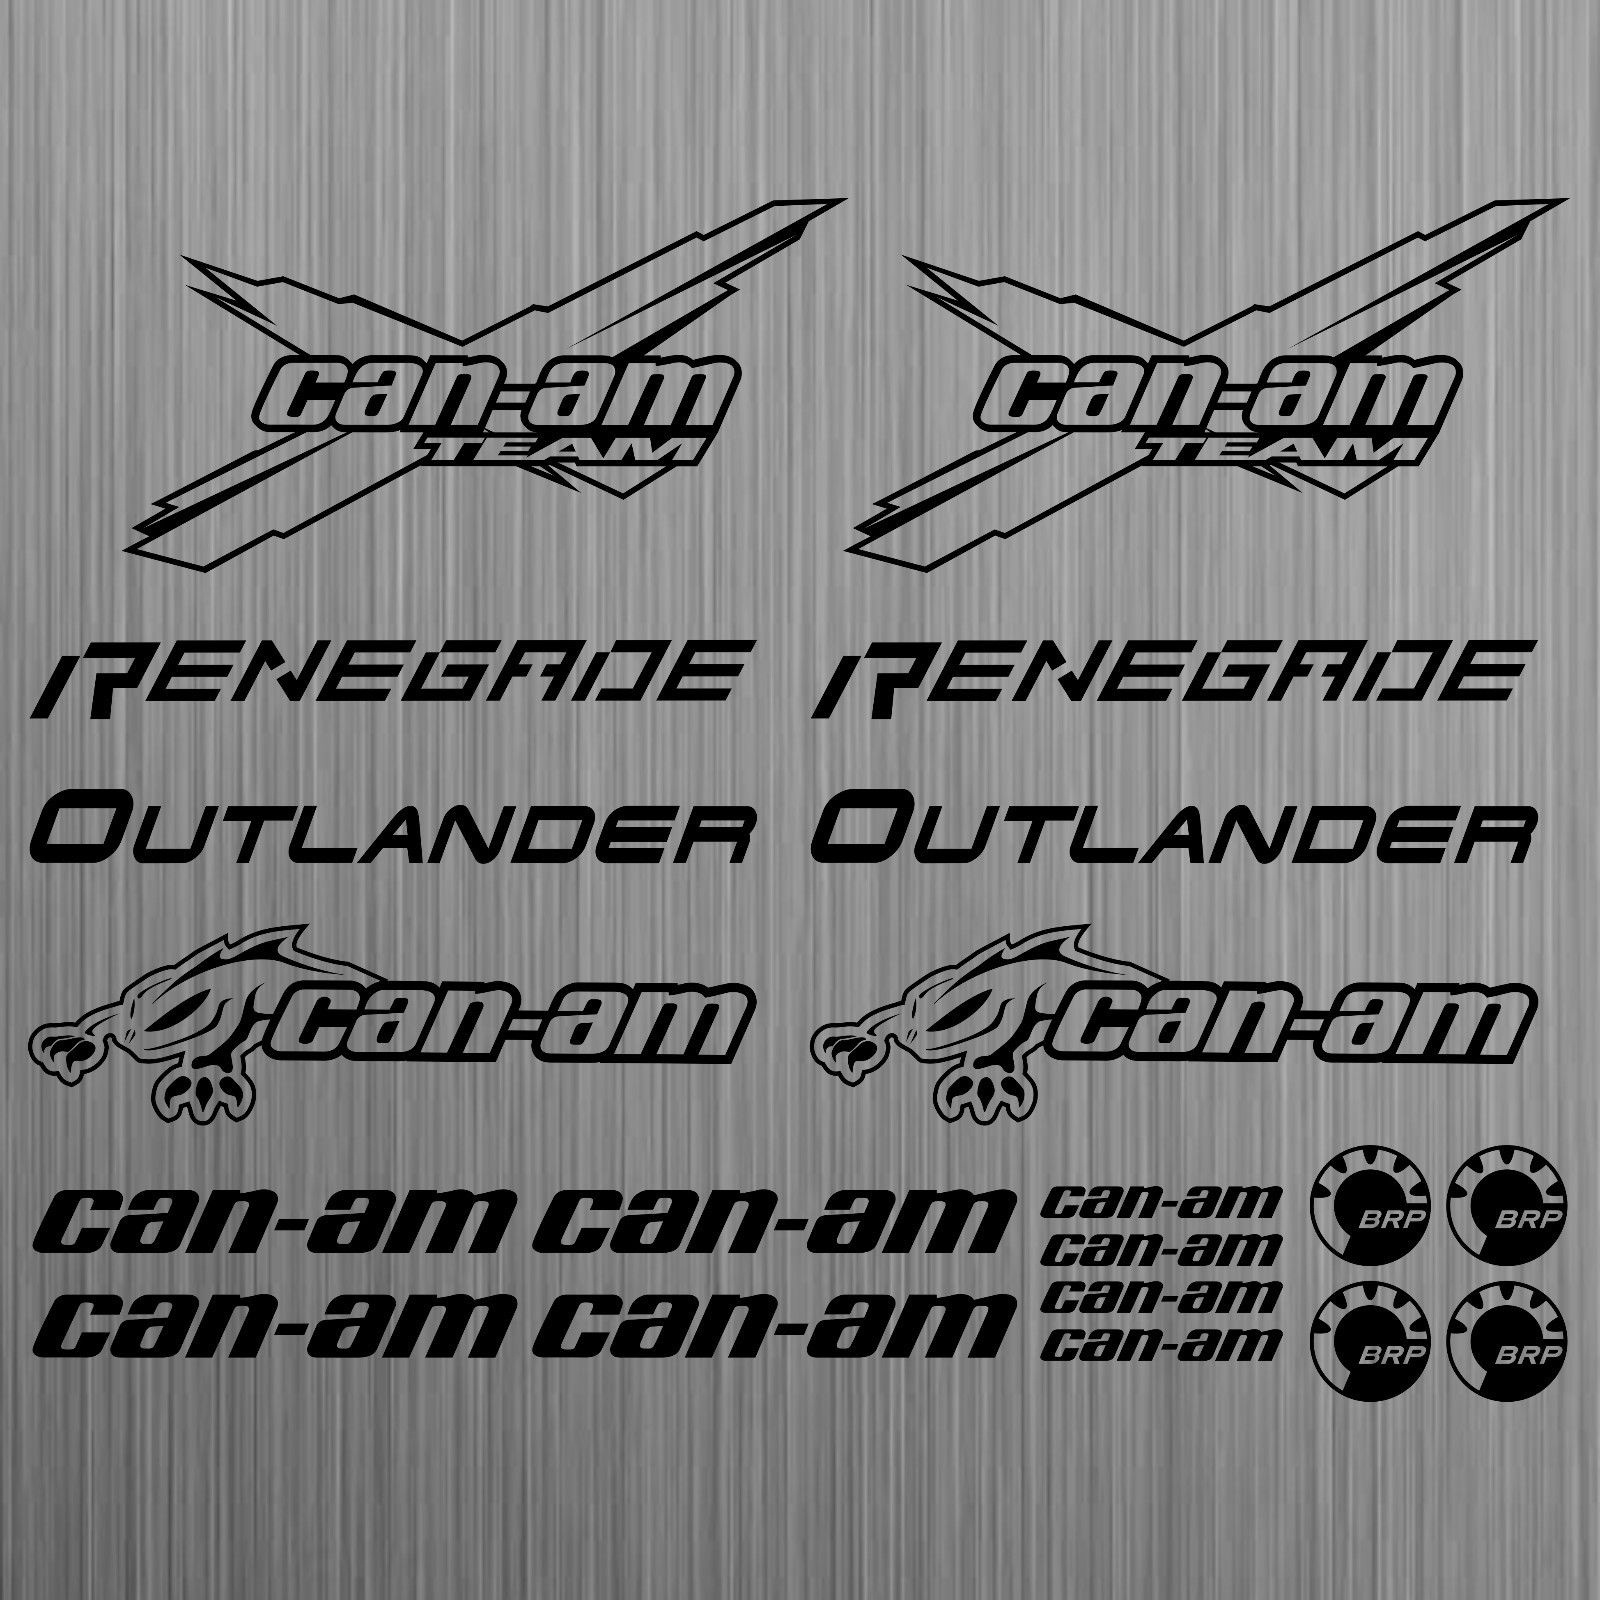 Us 1839 20 Offfor Can Am Canam Team Brp Renegade Outlander Sticker Quad Atv 20 Pieces Car Styling In Car Stickers From Automobiles Motorcycles